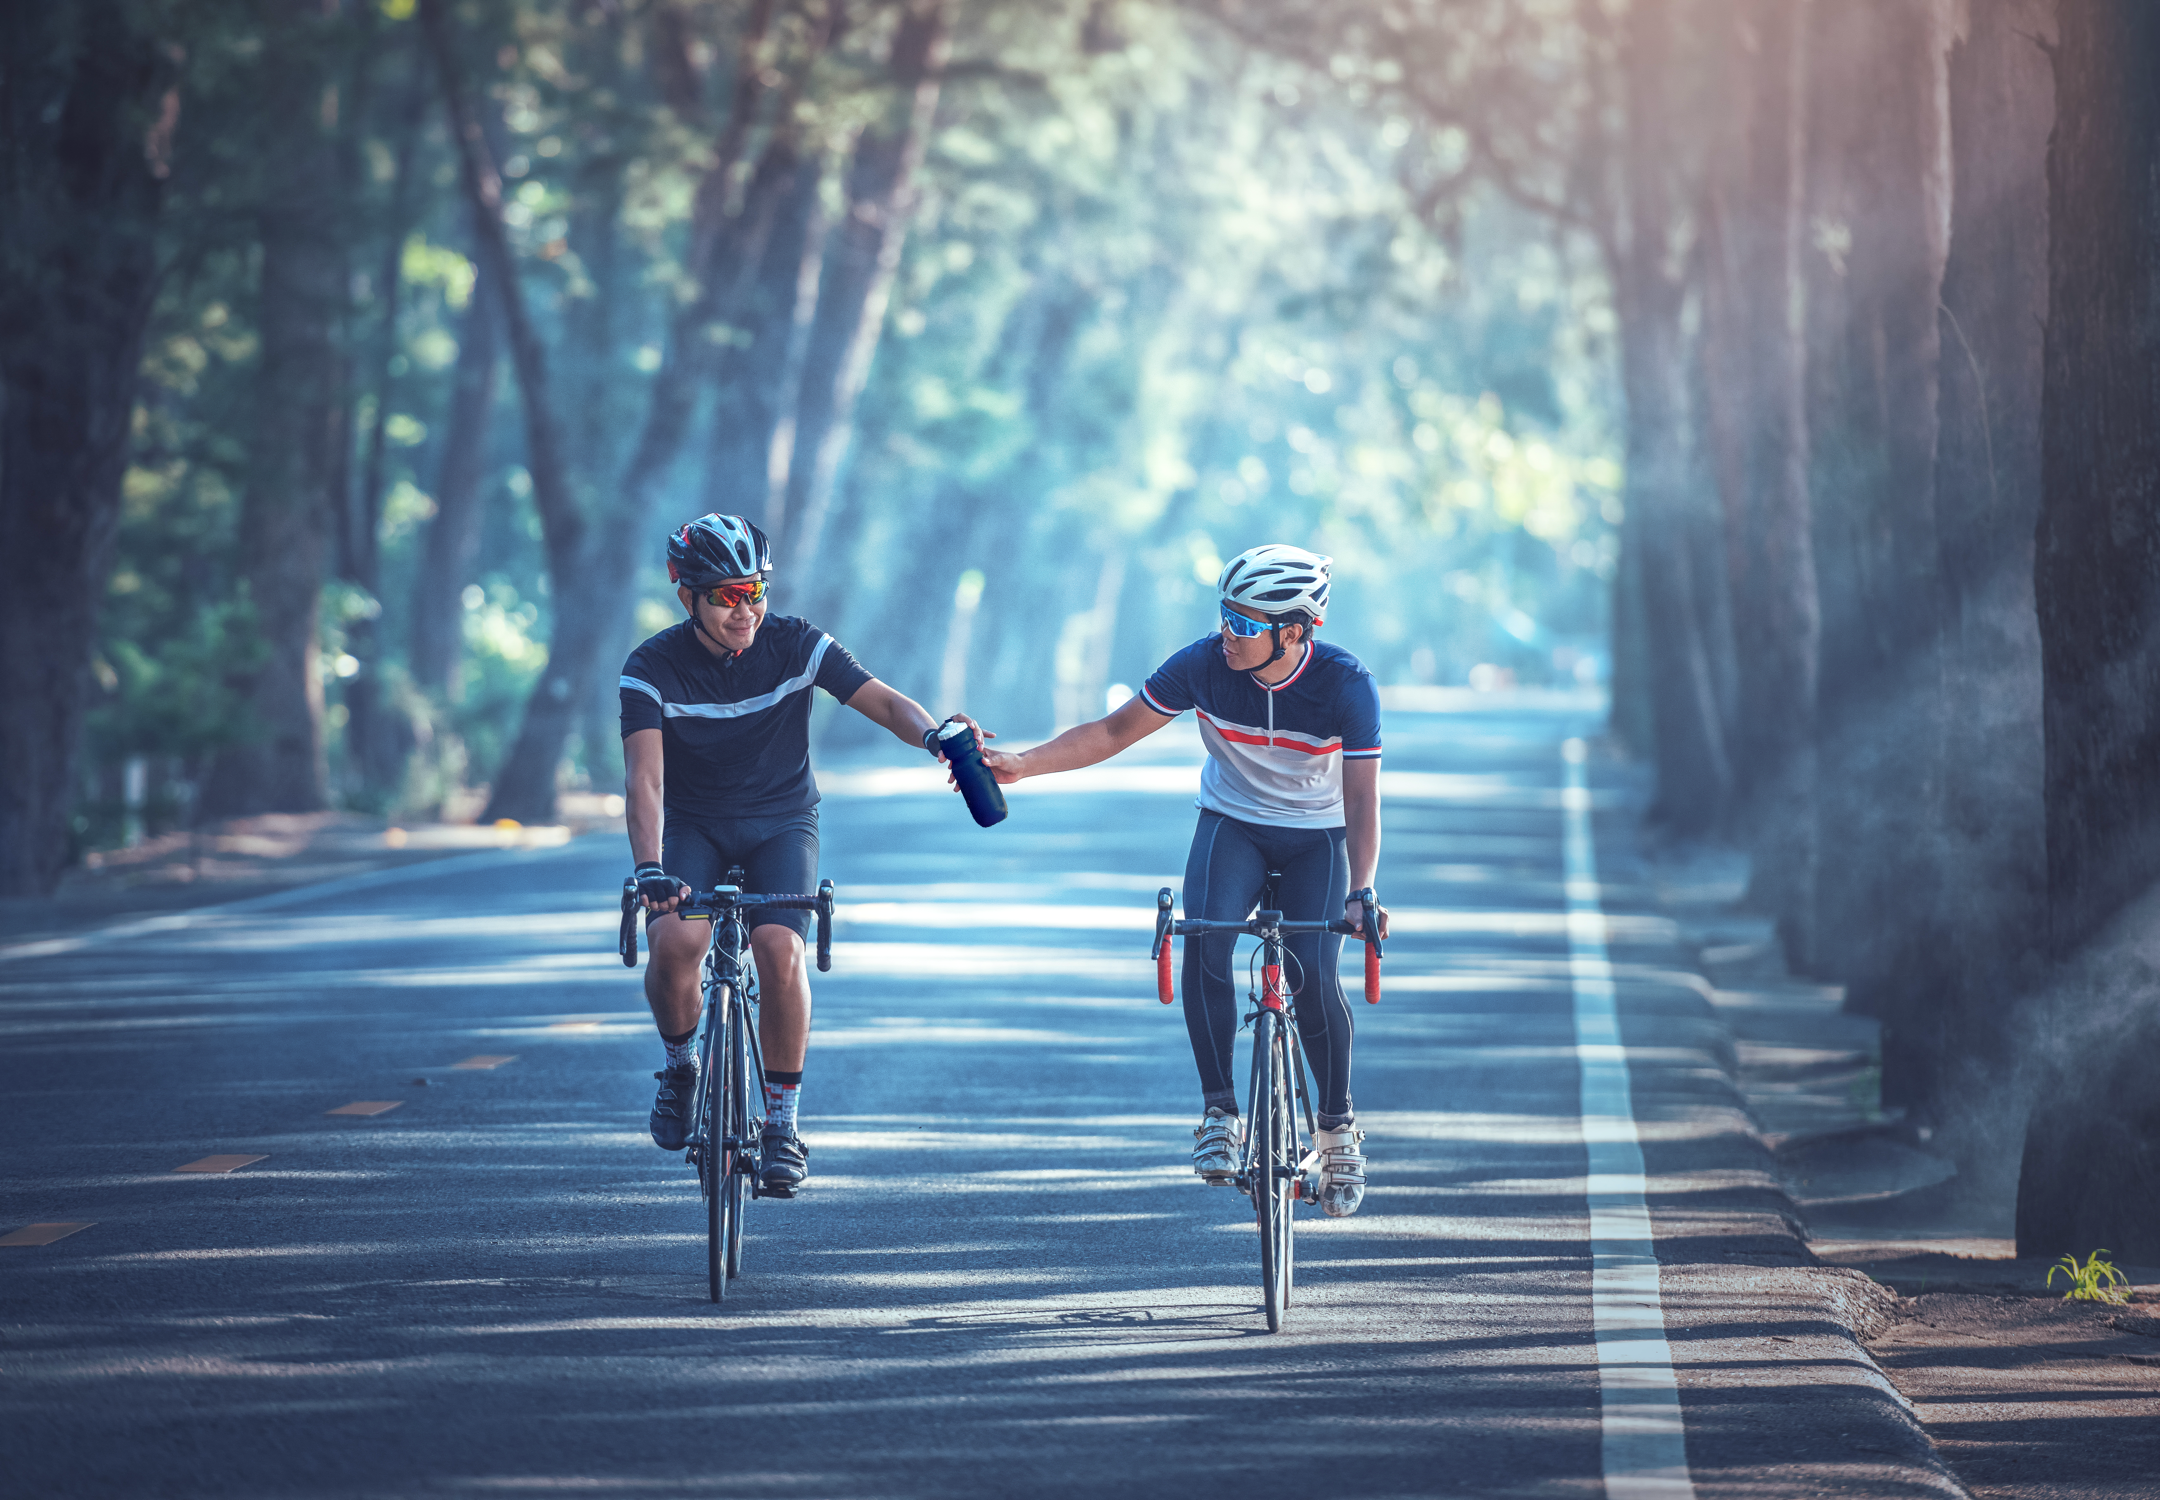 Bicycle and PMD Insurance